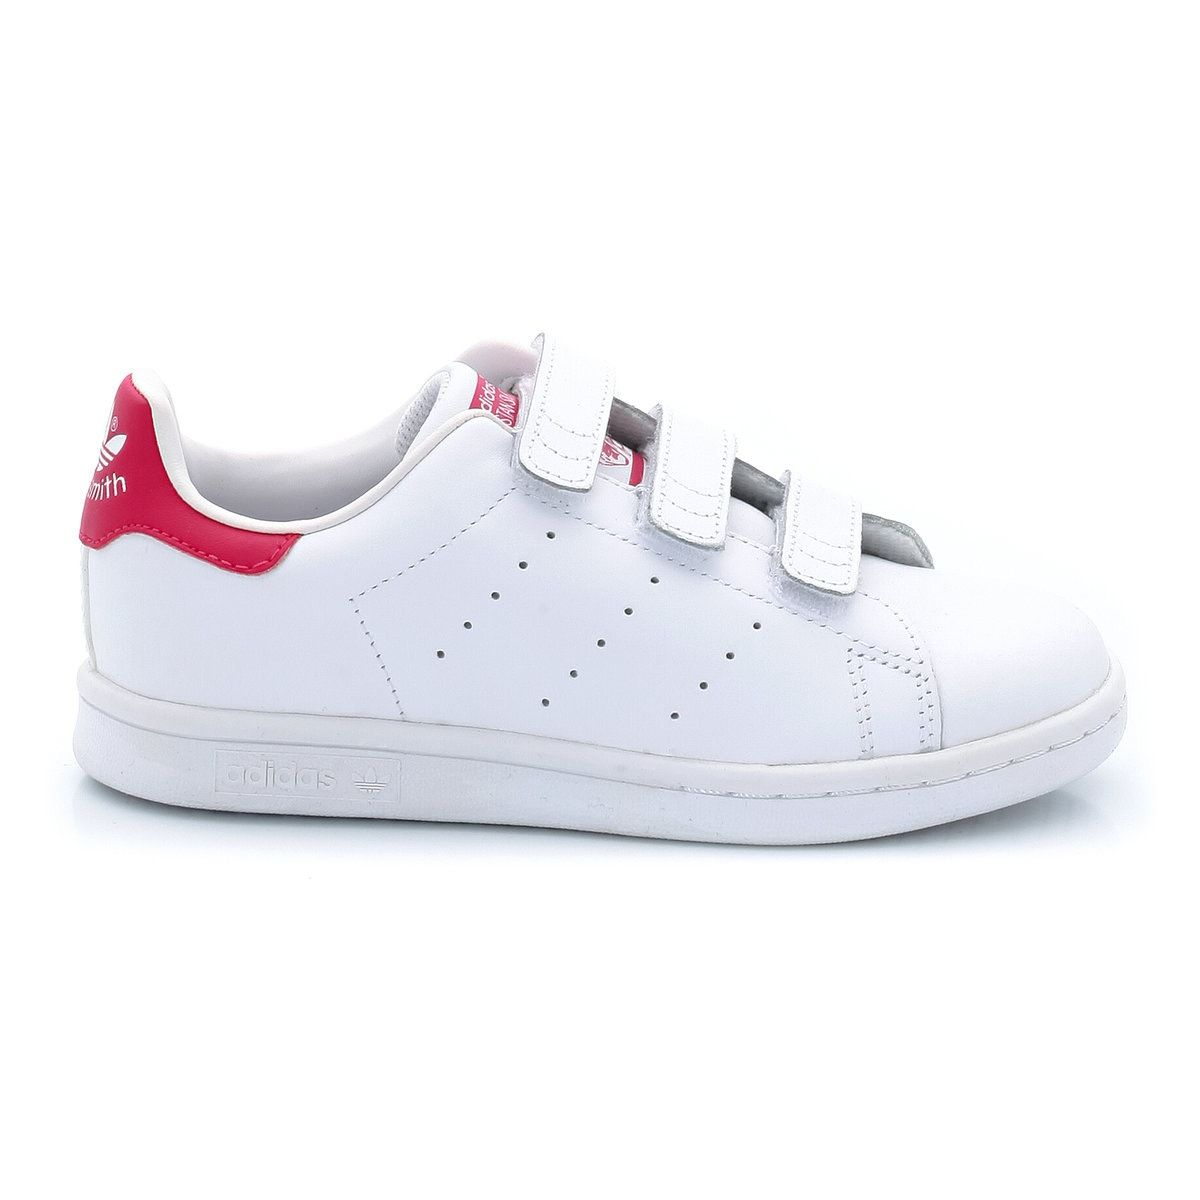 Product details•sports shoes•flat heel•fastening : touch 'n' close•smooth finishfabric content and care advice•uppers : 100% leather•lining : 100%  textile•cushioning : 100%  textile•sole : 100% rubbercreated in 1971 for the tennis star, stan smith, this shoe with its clean lines has made a strong impression on the history of fashion. Its low-top upper in soft, supple leather, its 3 perforated stripes and its tone-on-tone sole have made it into an iconic, much loved sneak